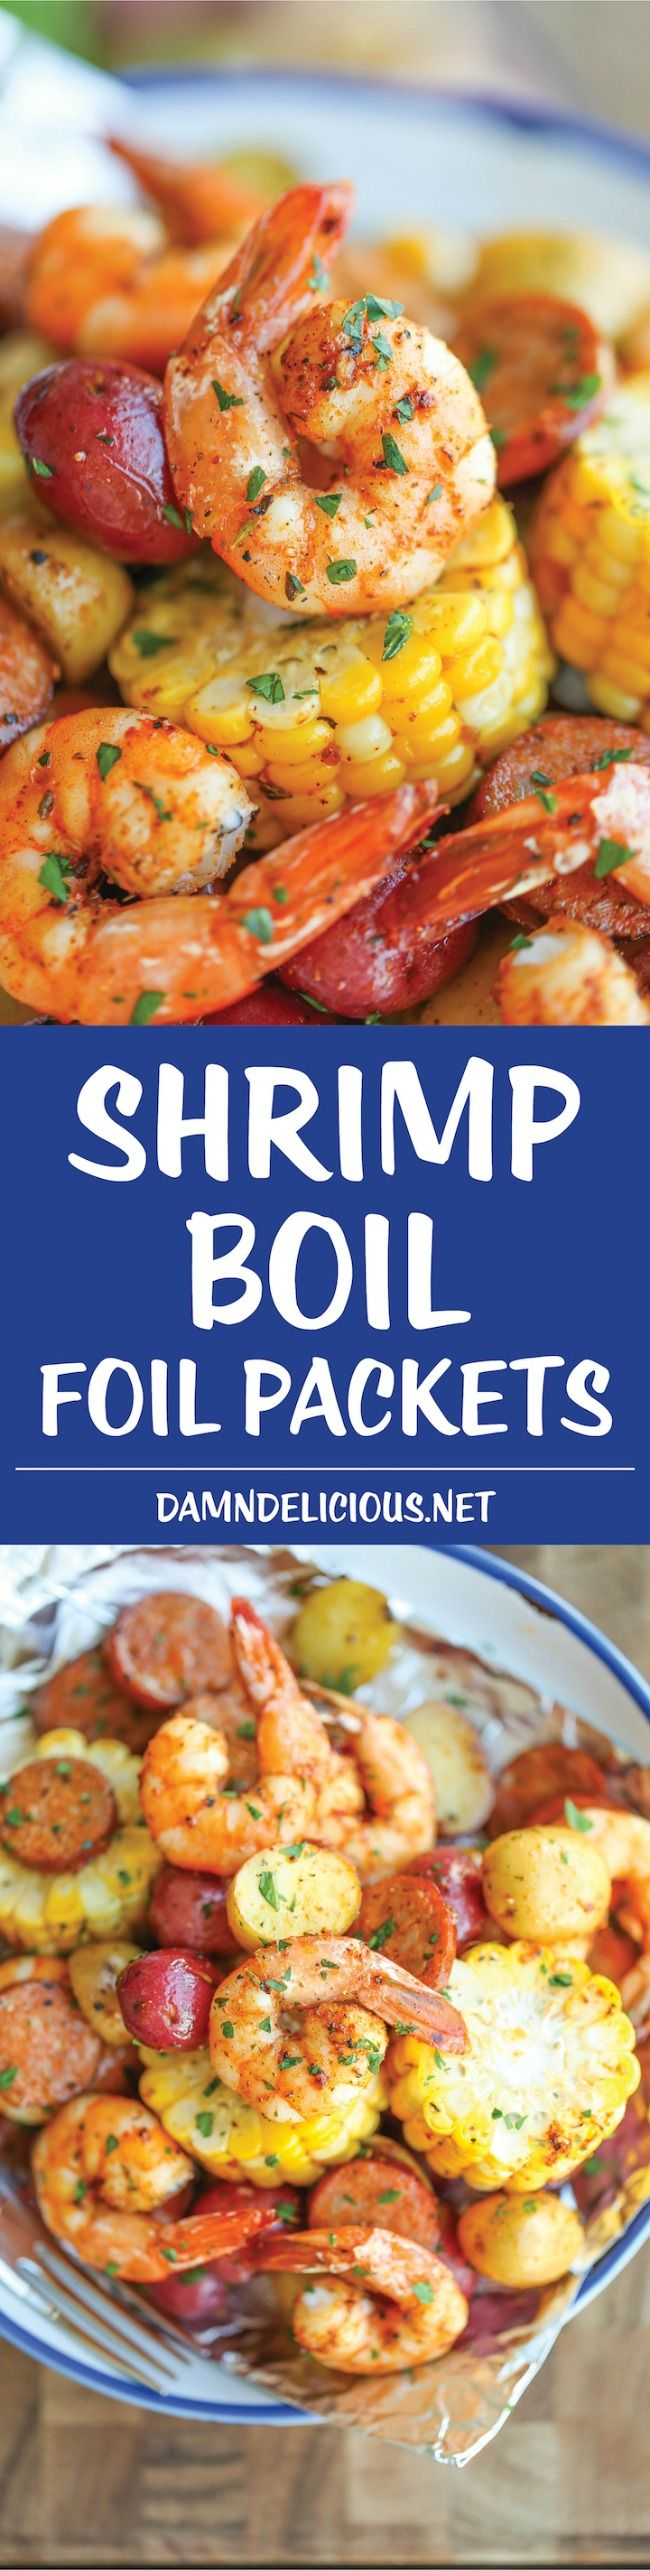 Perfect for the grill or oven these foil packet meals are baked in the foil so there's no cleaning up to do, check out these 11 Best Foil Packet Meals!